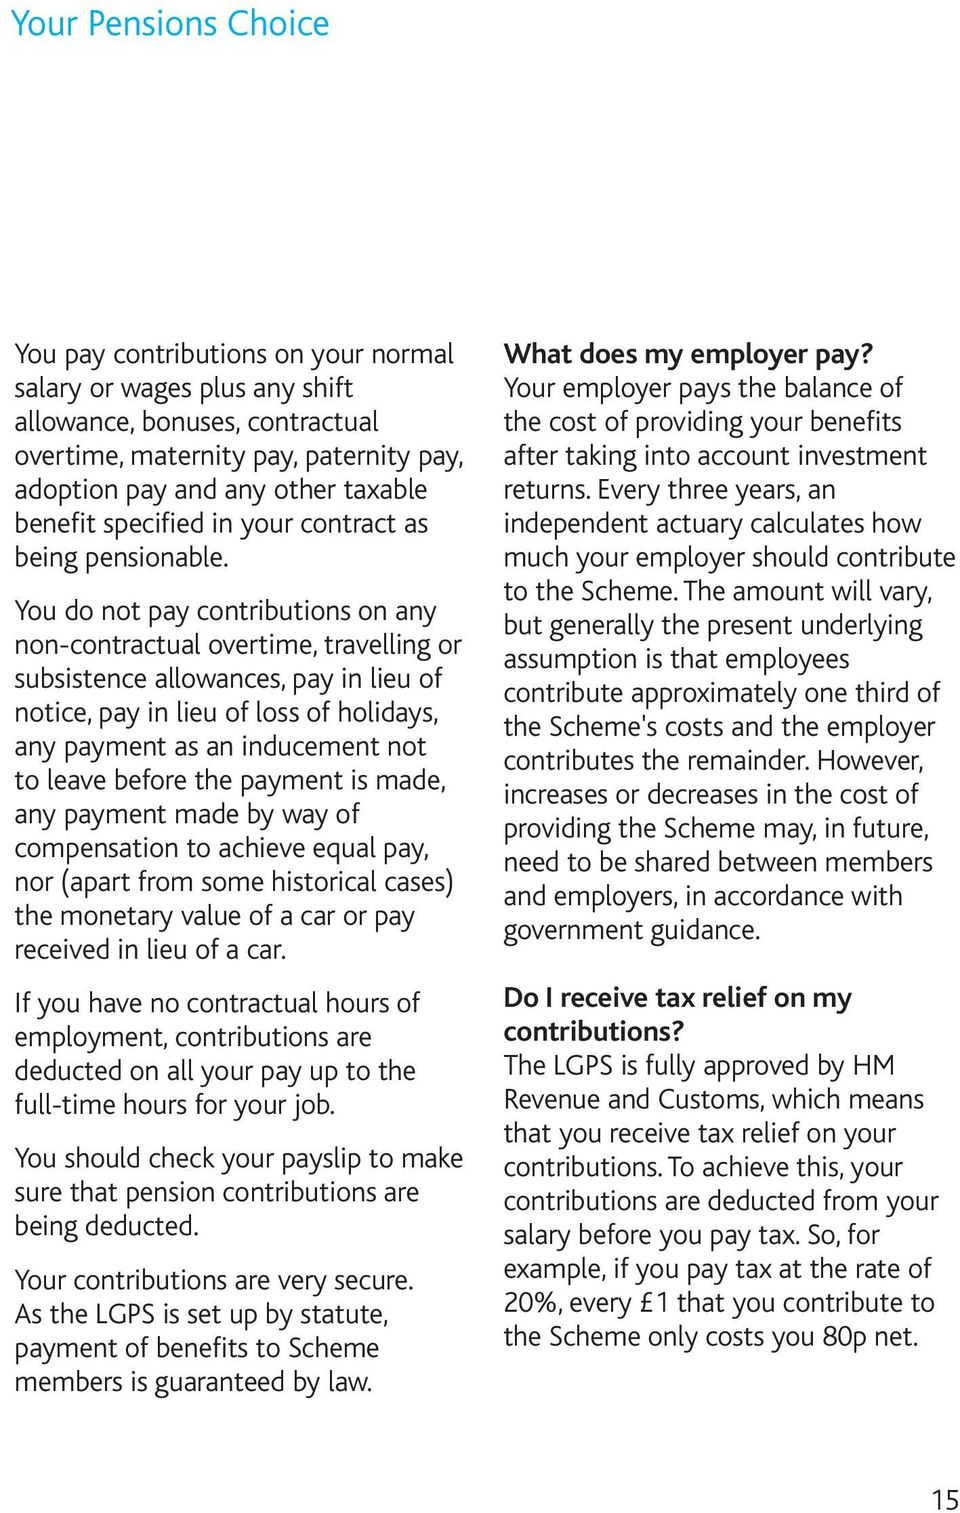 You do not pay contributions on any non-contractual overtime, travelling or subsistence allowances, pay in lieu of notice, pay in lieu of loss of holidays, any payment as an inducement not to leave